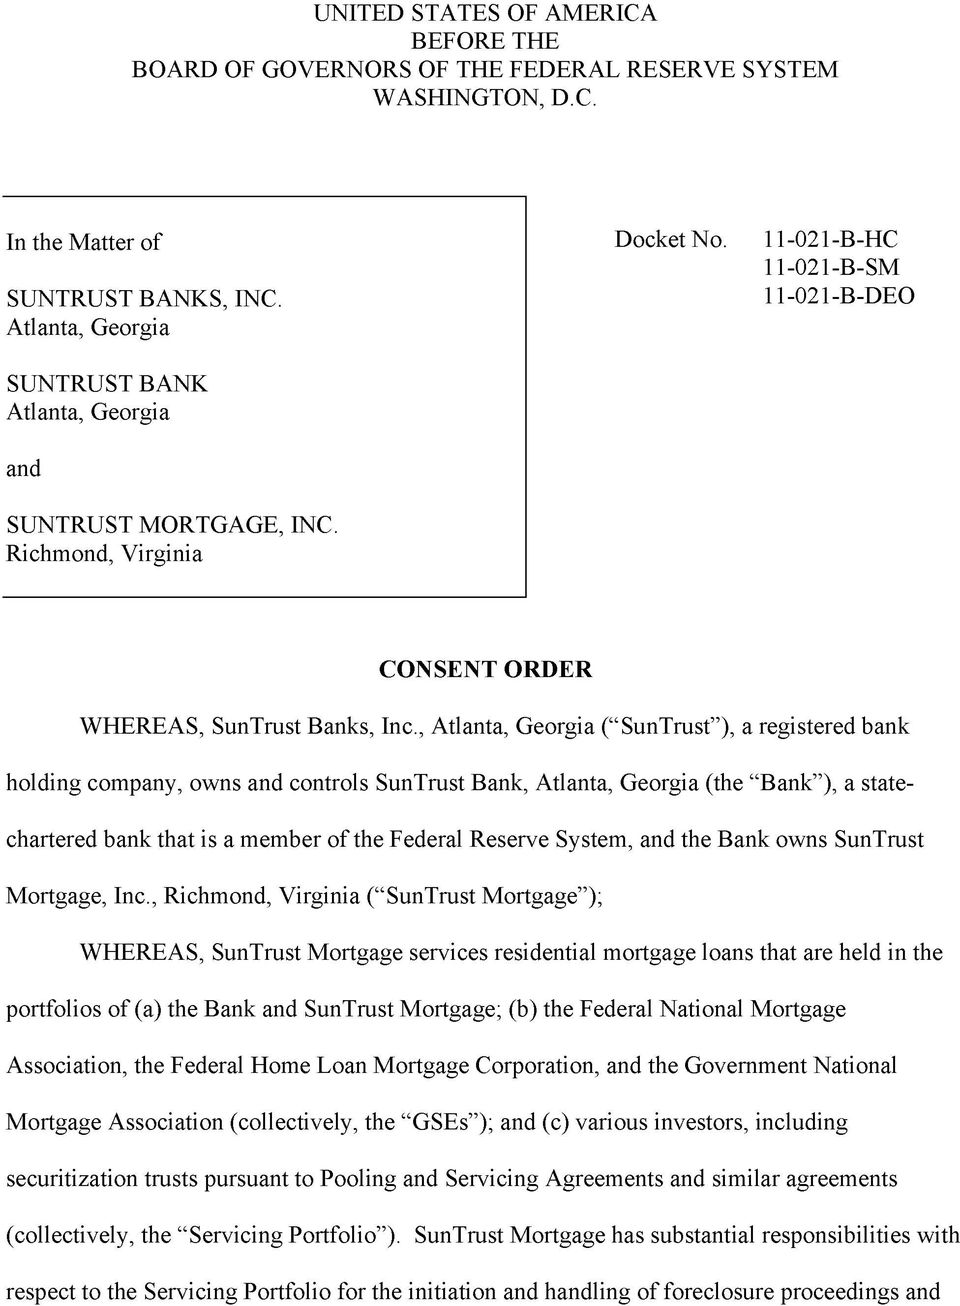 ", Atlanta, Georgia (""SunTrust""), a registered bank holding company, owns and controls SunTrust Bank, Atlanta, Georgia (the ""Bank""), a statechartered bank that is a member of the Federal Reserve"